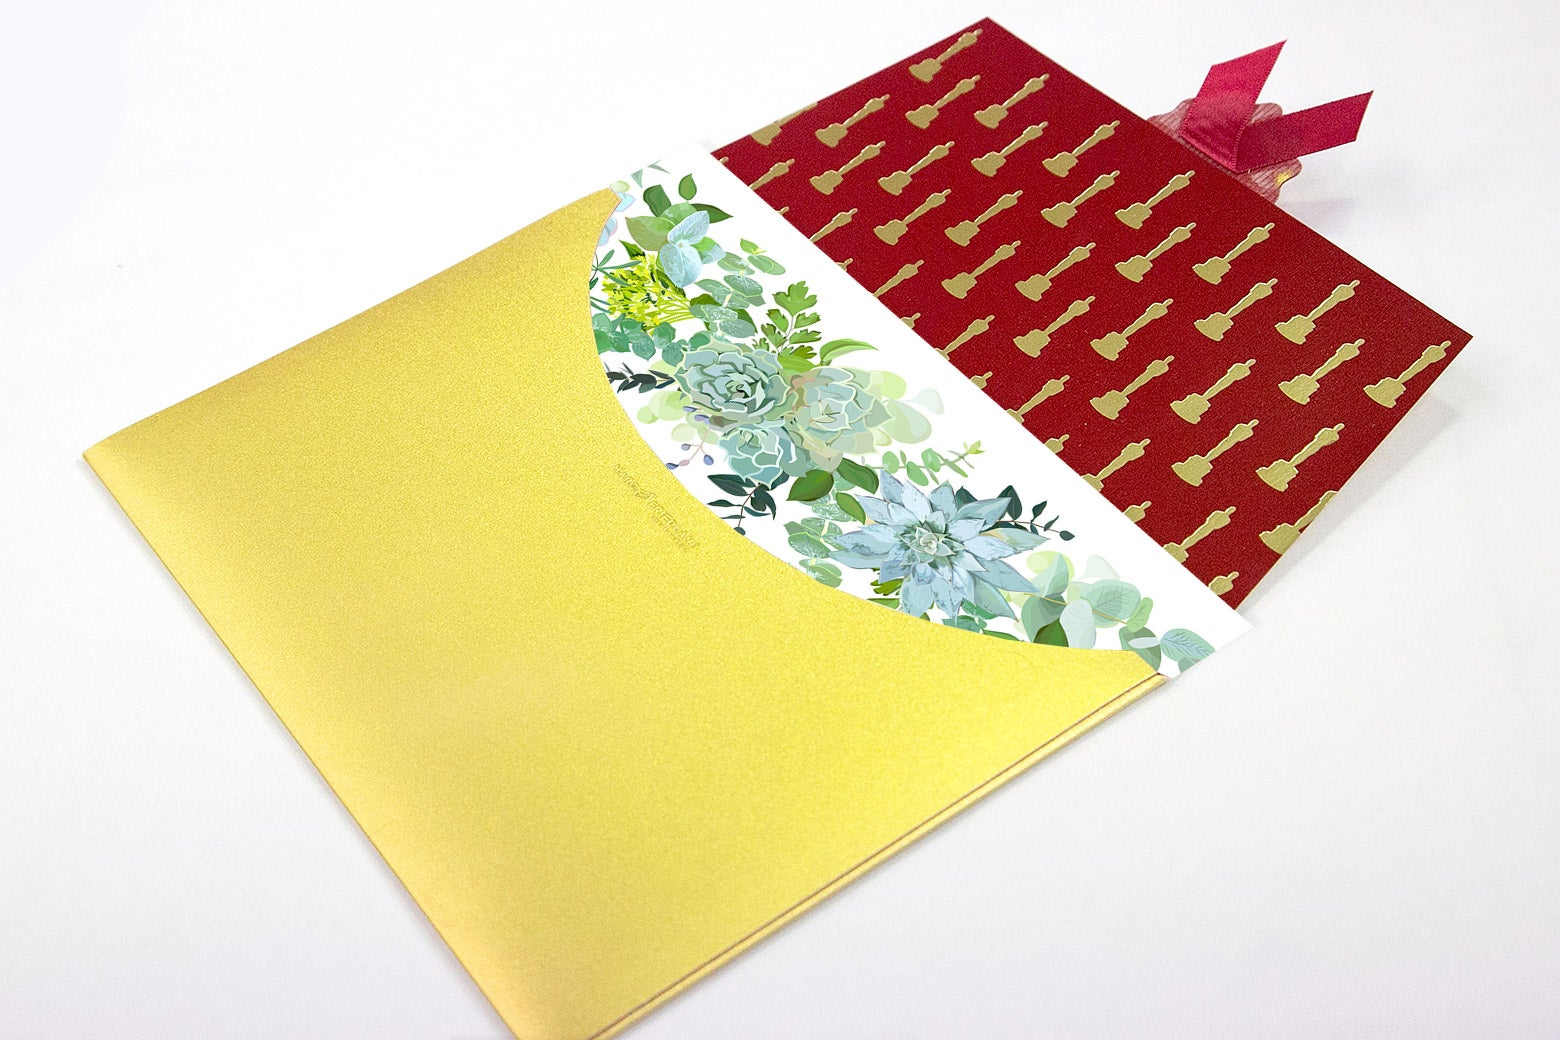 A flowery greeting card in an Oscar envelope.